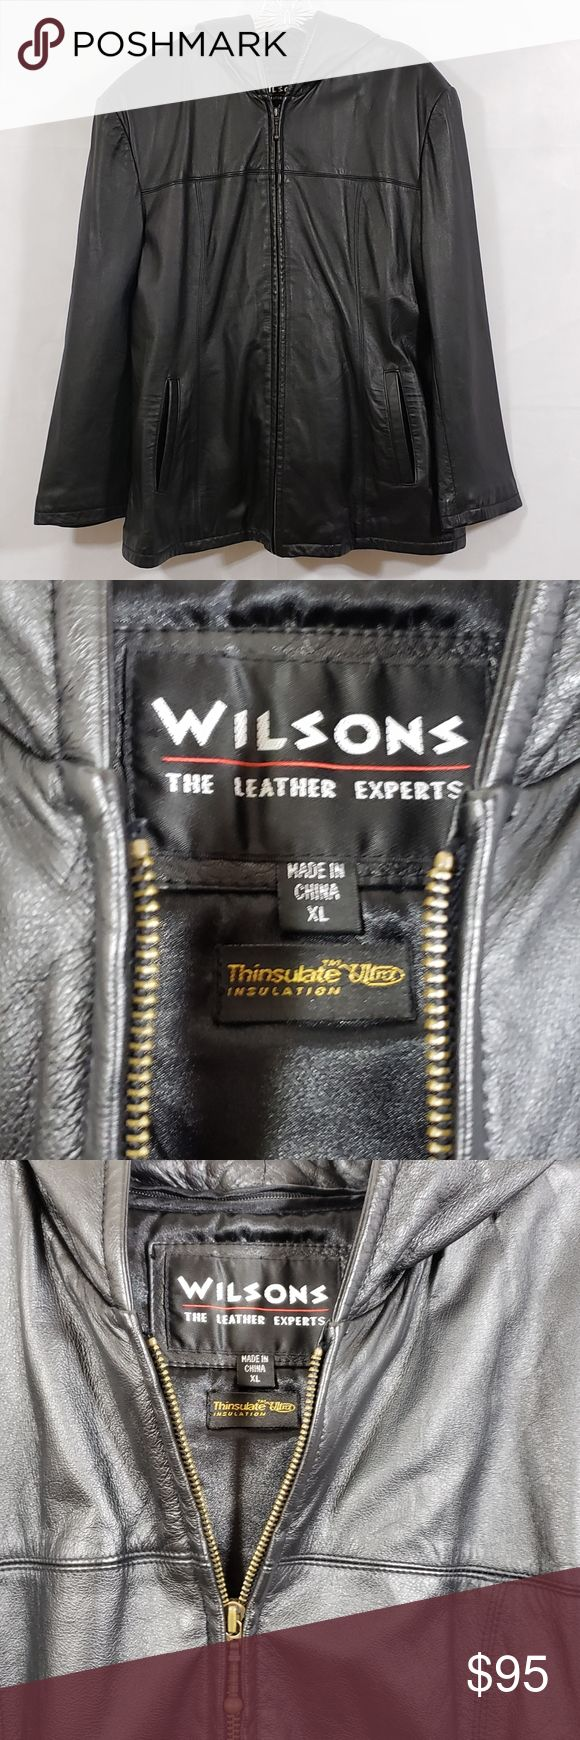 Wilson's The Leather Experts Jacket Vintage hooded leather